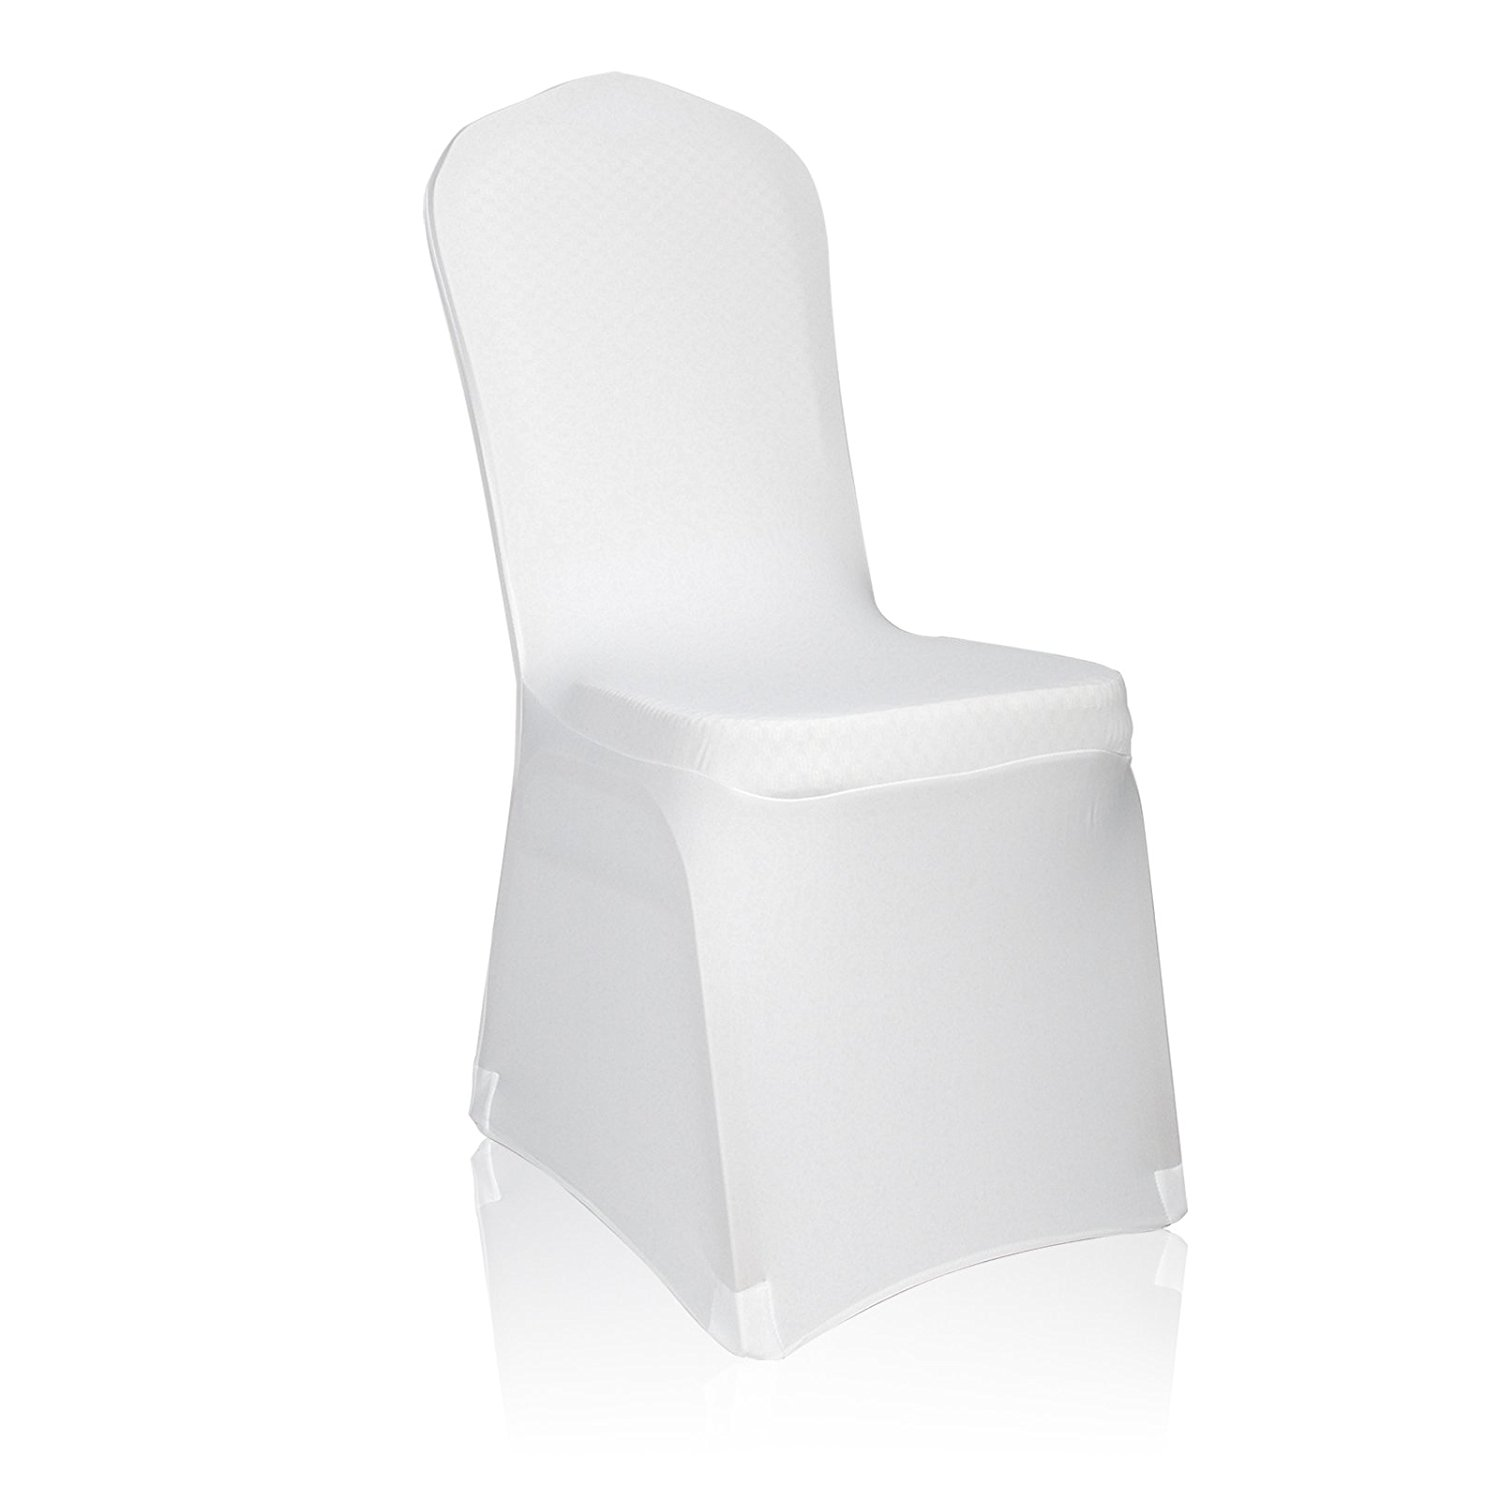 chair cover rental orland park office lift cylinder home oak lawn party rentals polyester spandex covers white